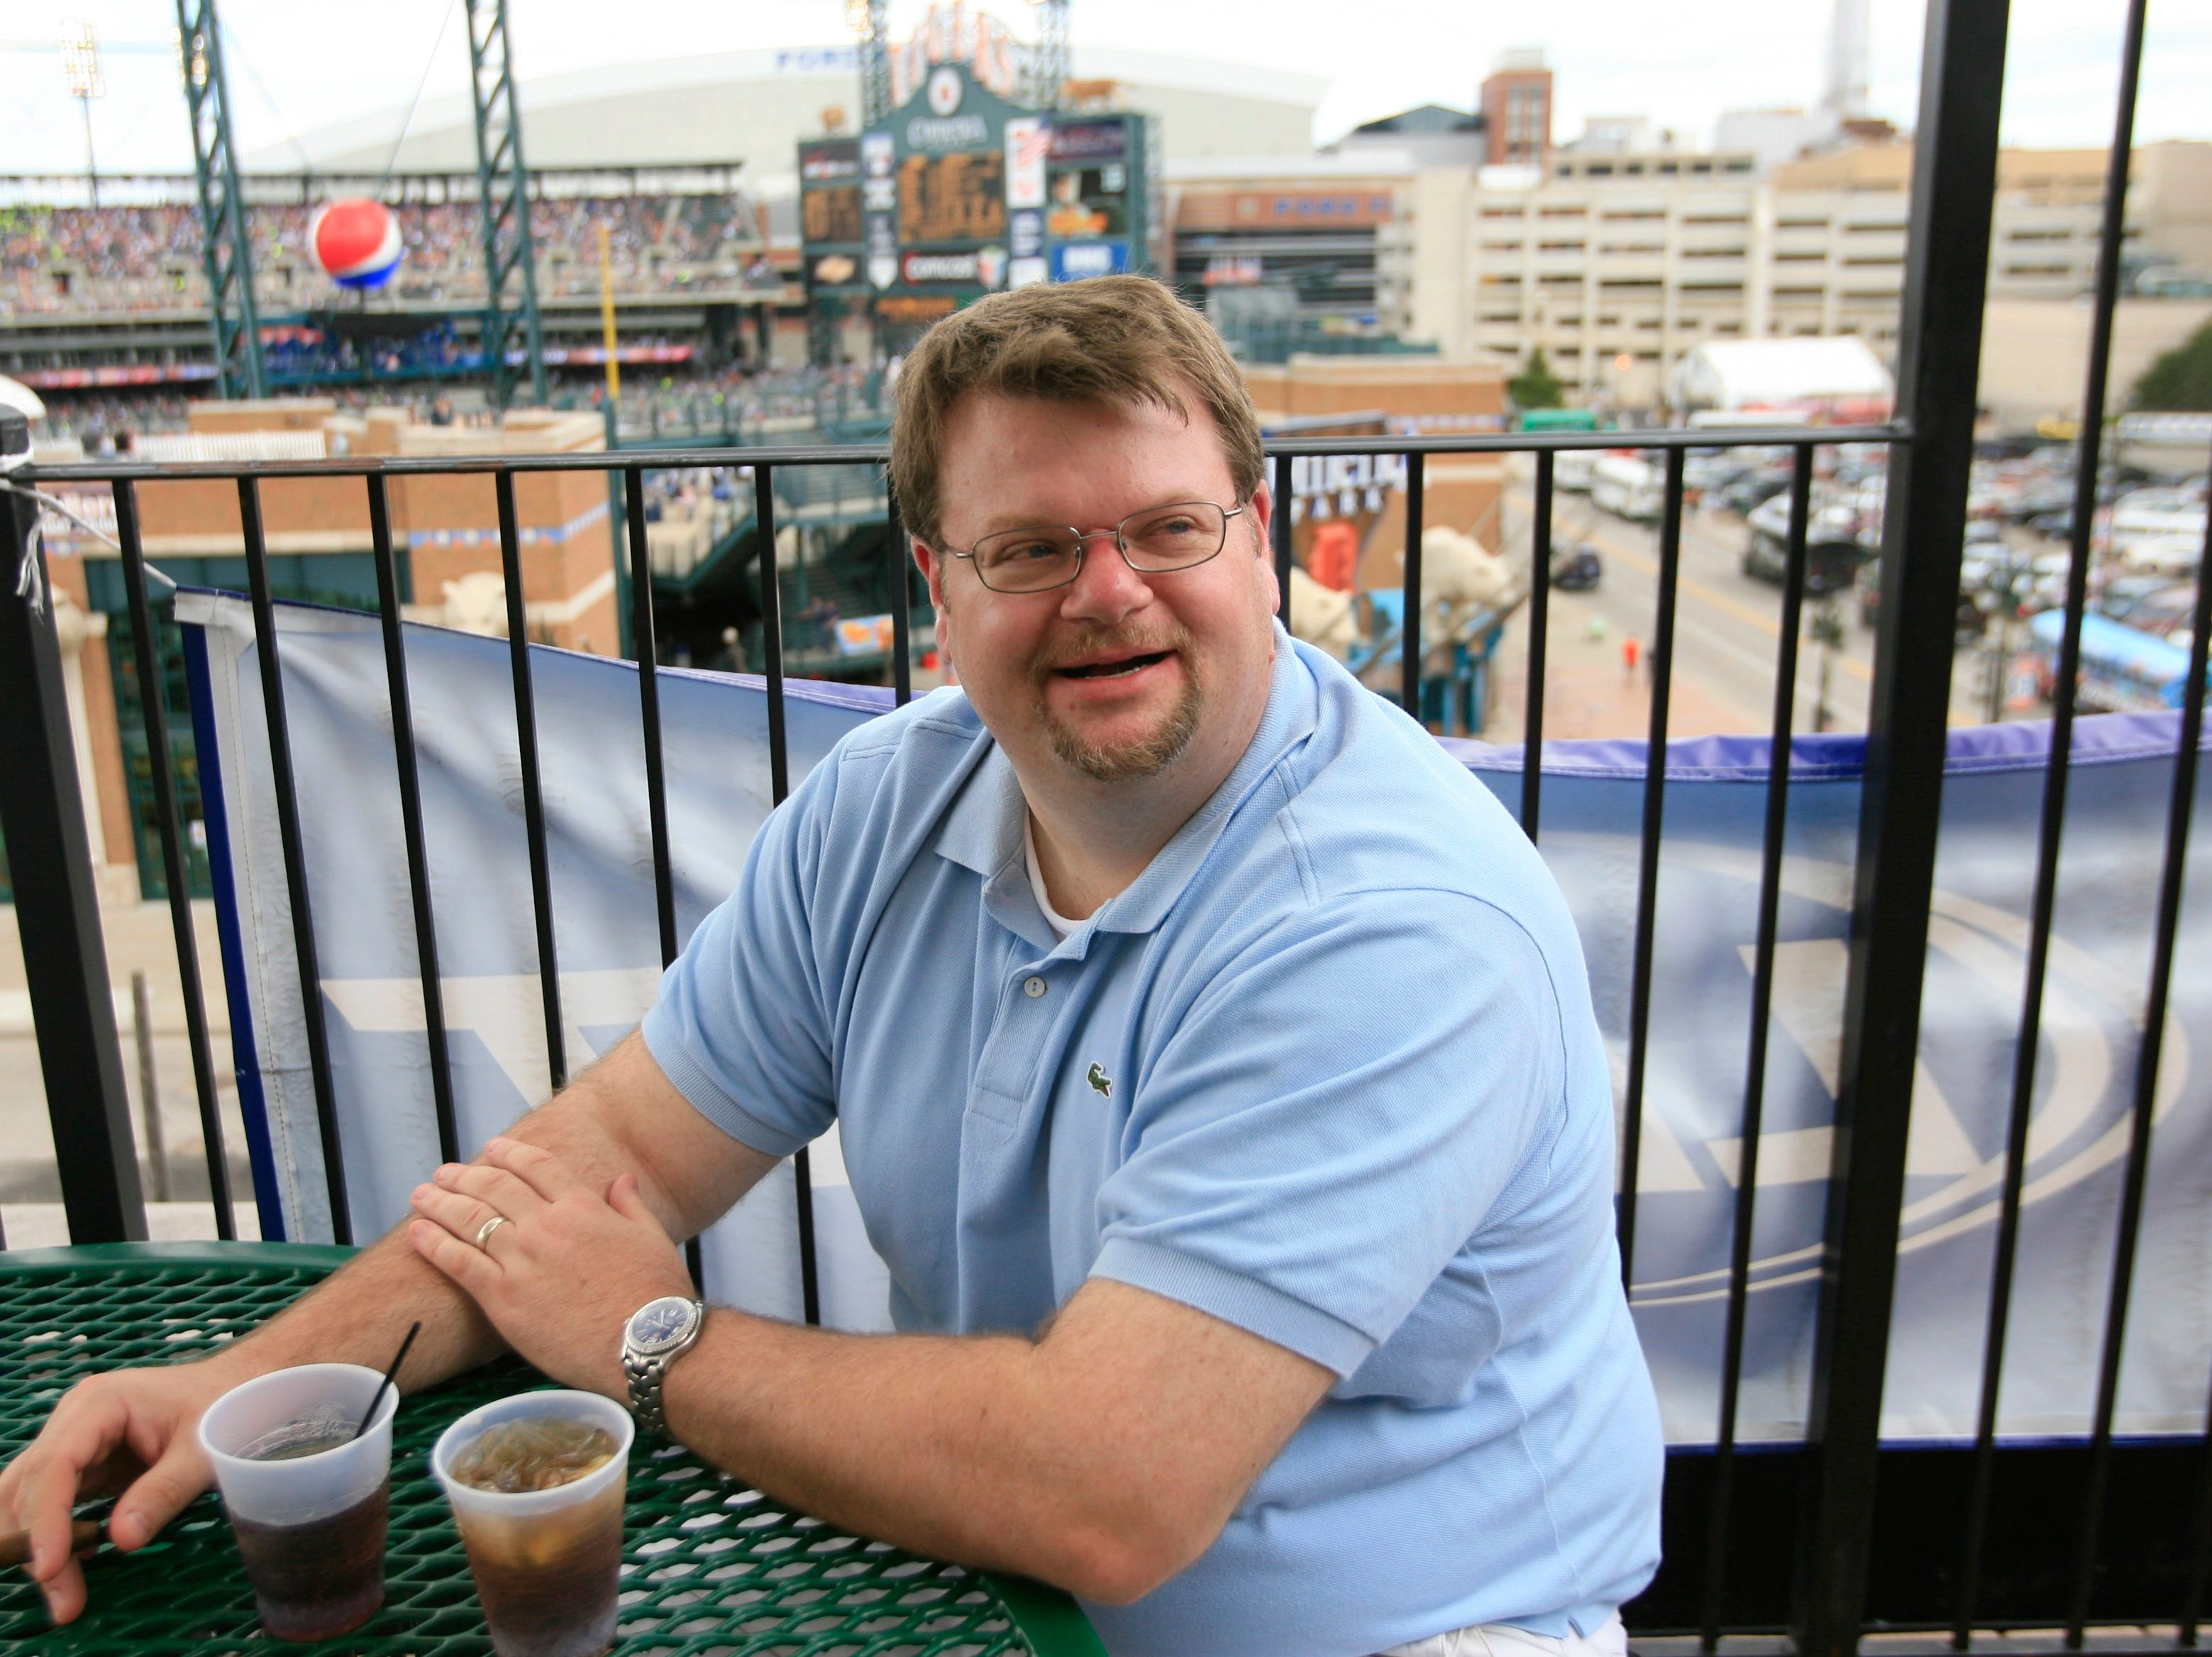 Tony Dahm, 38, of Madison Heights finds a hiding spot to smoke his cigar on the roof of Cheli's Chili Bar in Detroit in 2010.